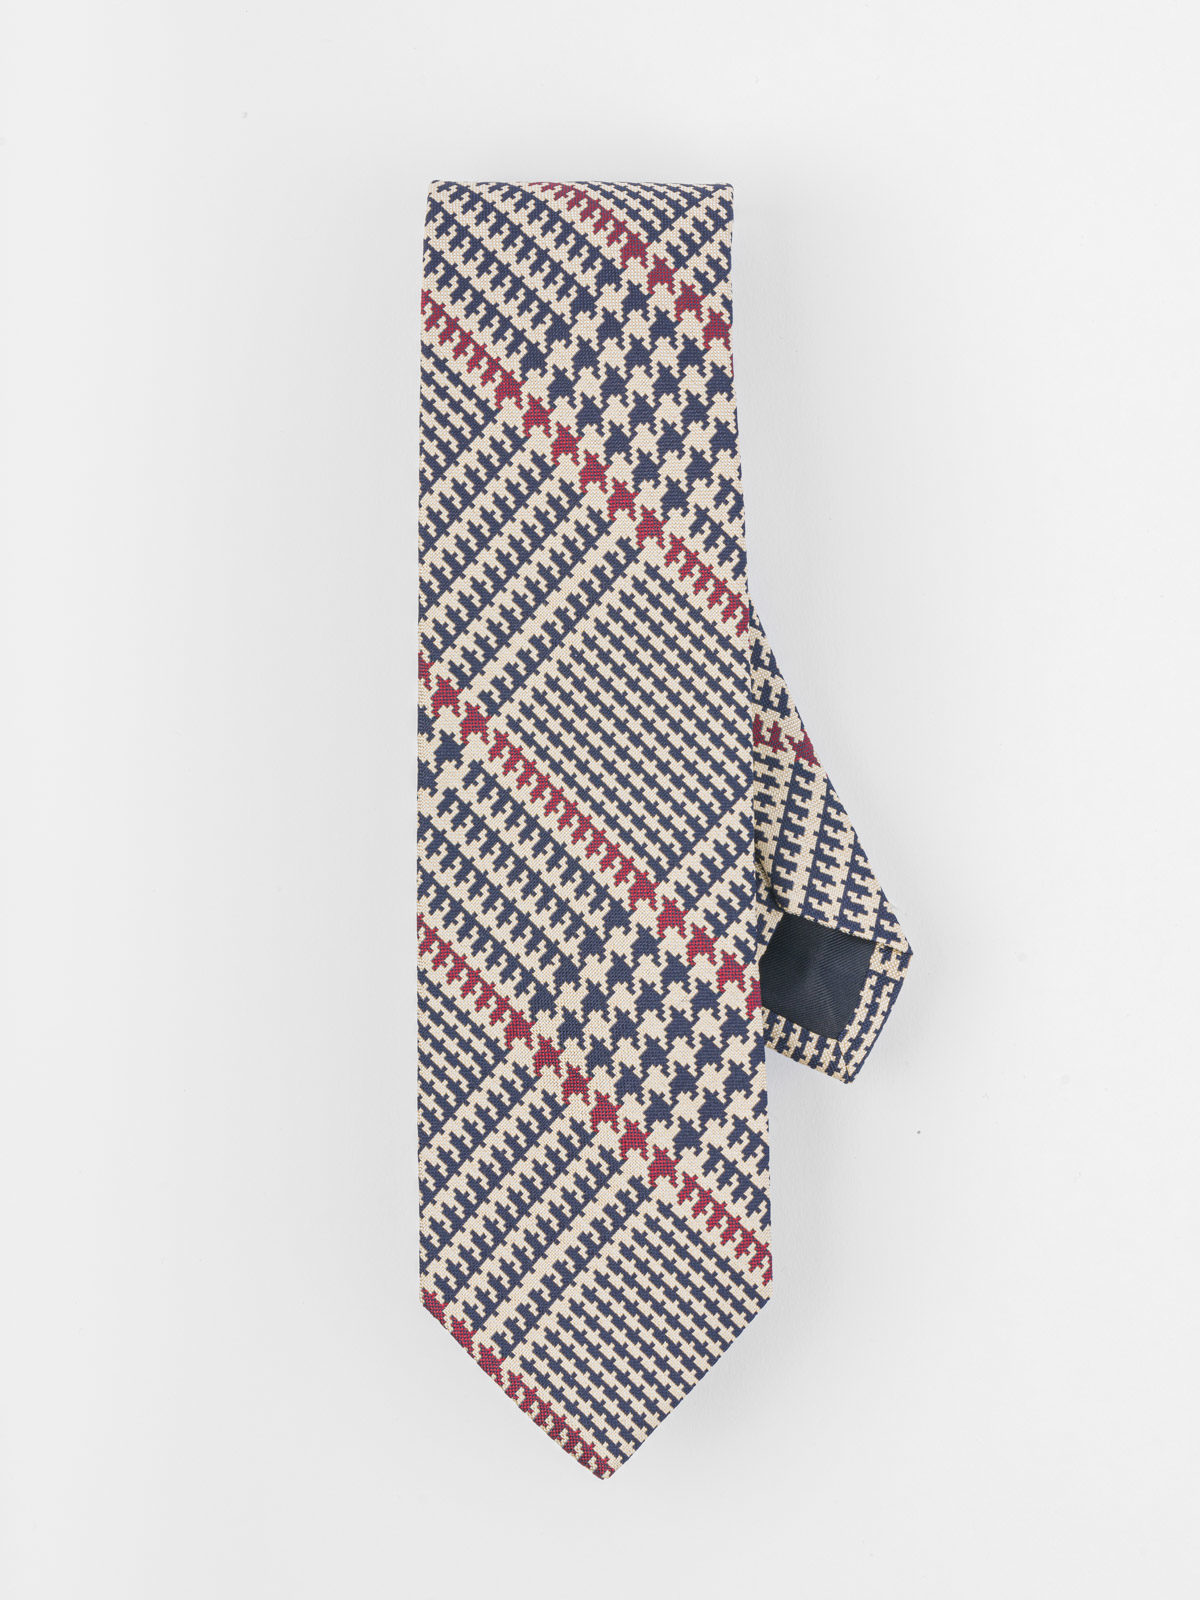 DRAKE'S BLU AND BORDEAUX TIE